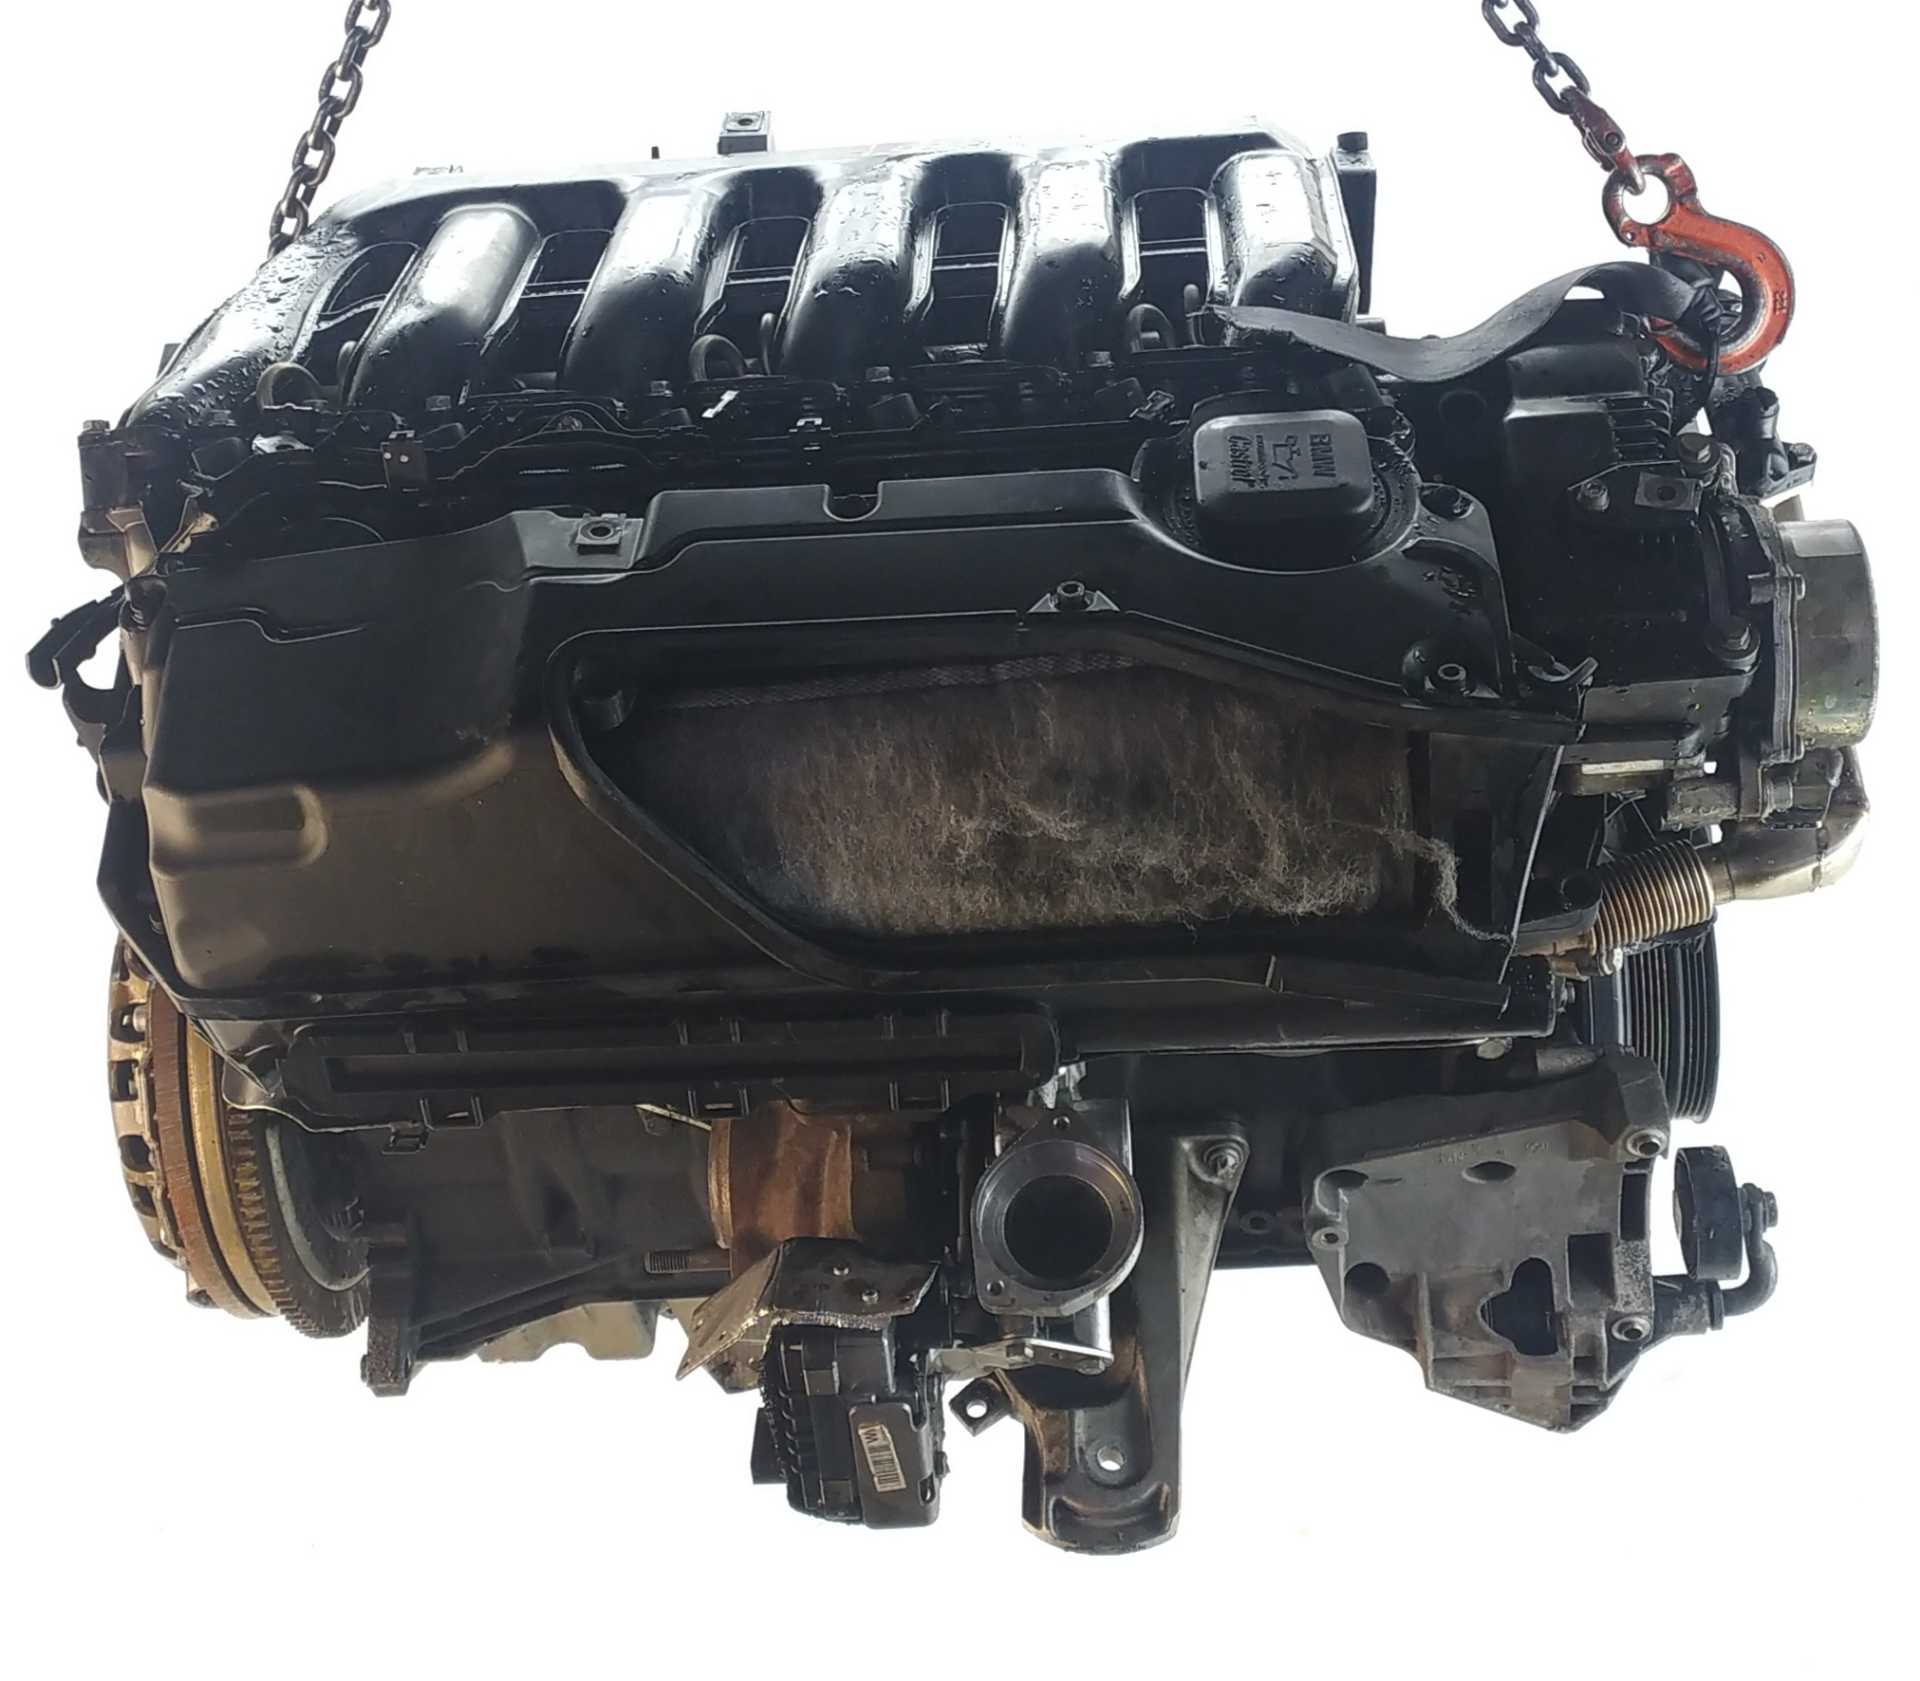 MOTOR COMPLETO BMW 5 Touring 525 d (130 KW / 177 CV) (03.2004 - 03.2007)